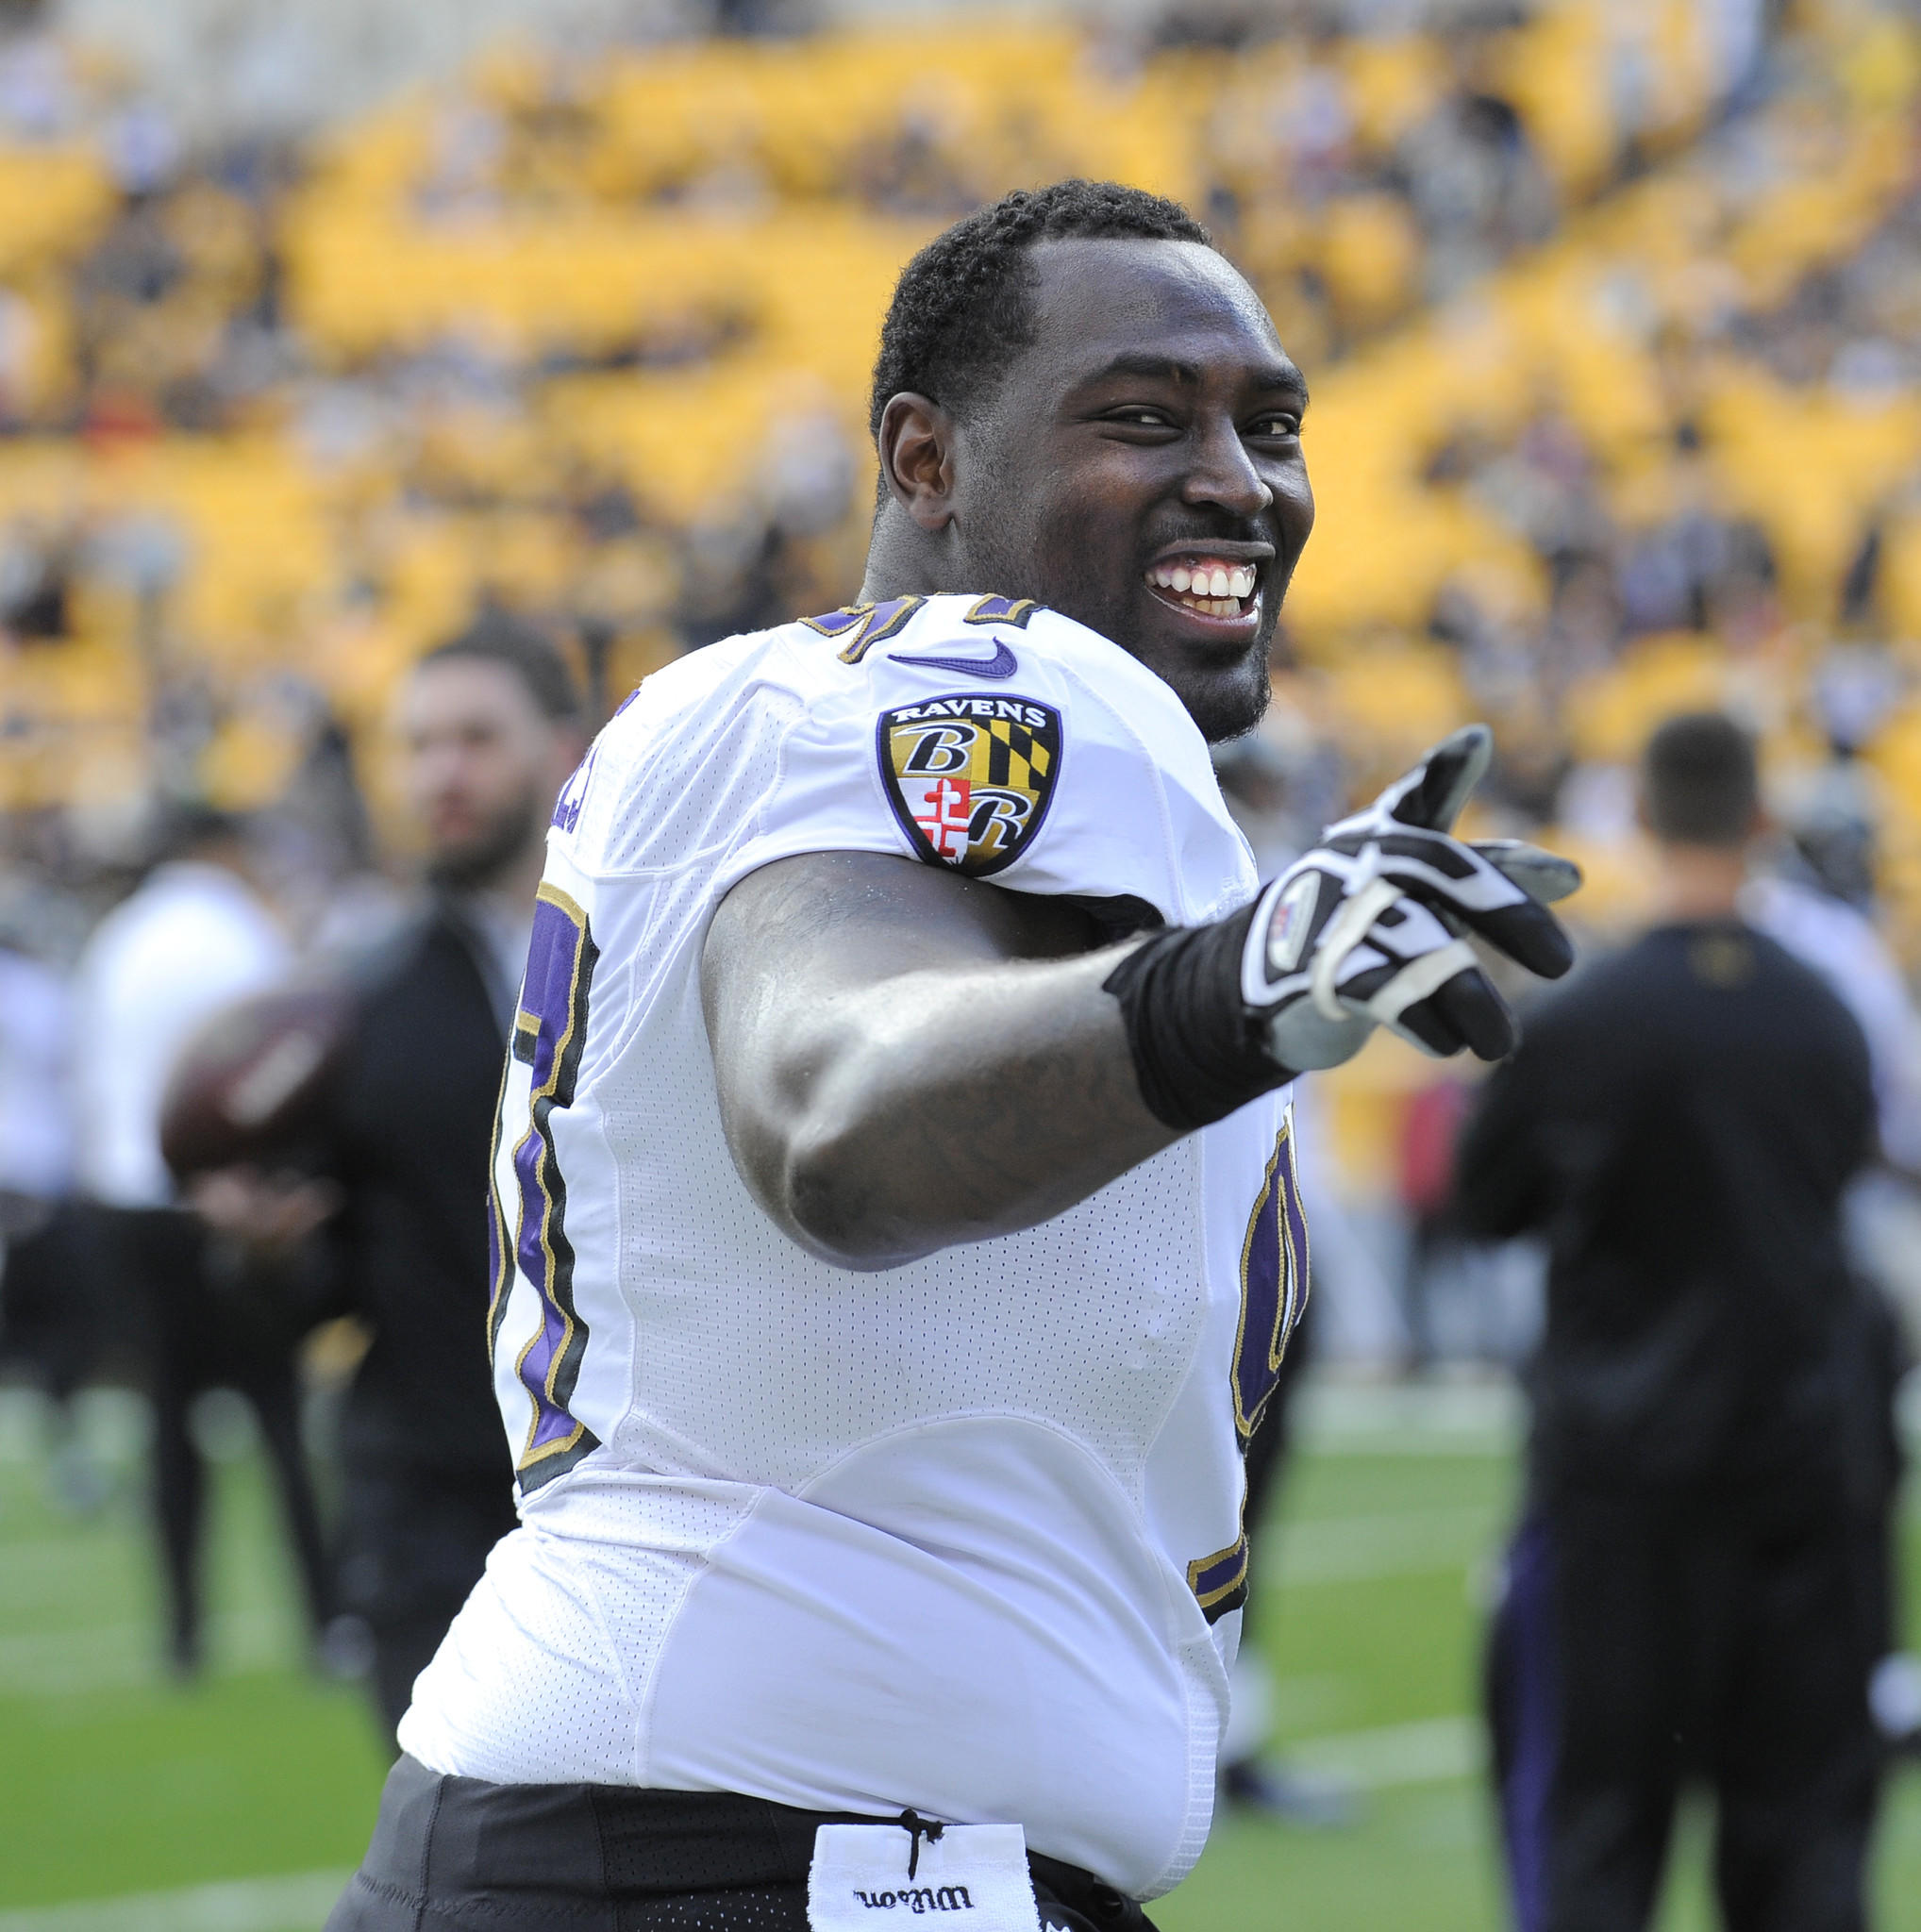 Ravens' Arthur Jones smiles before the Ravens play the Pittsburgh Steelers in October.